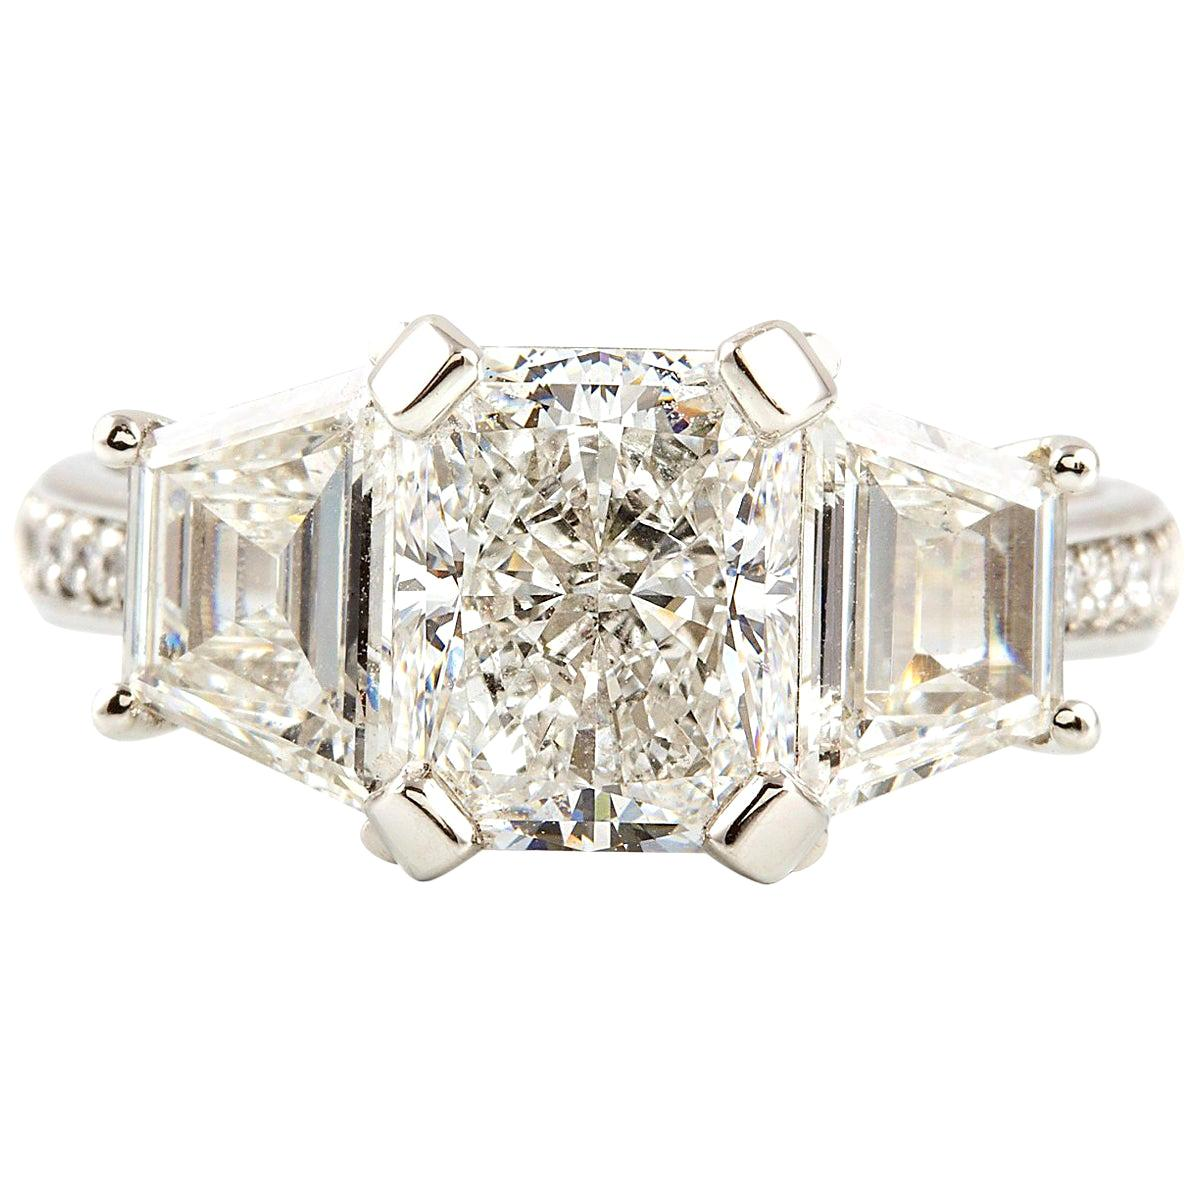 Kian Design Platinum GIA Certified Radiant and Trapezoid 3.68 Carat Diamond Ring